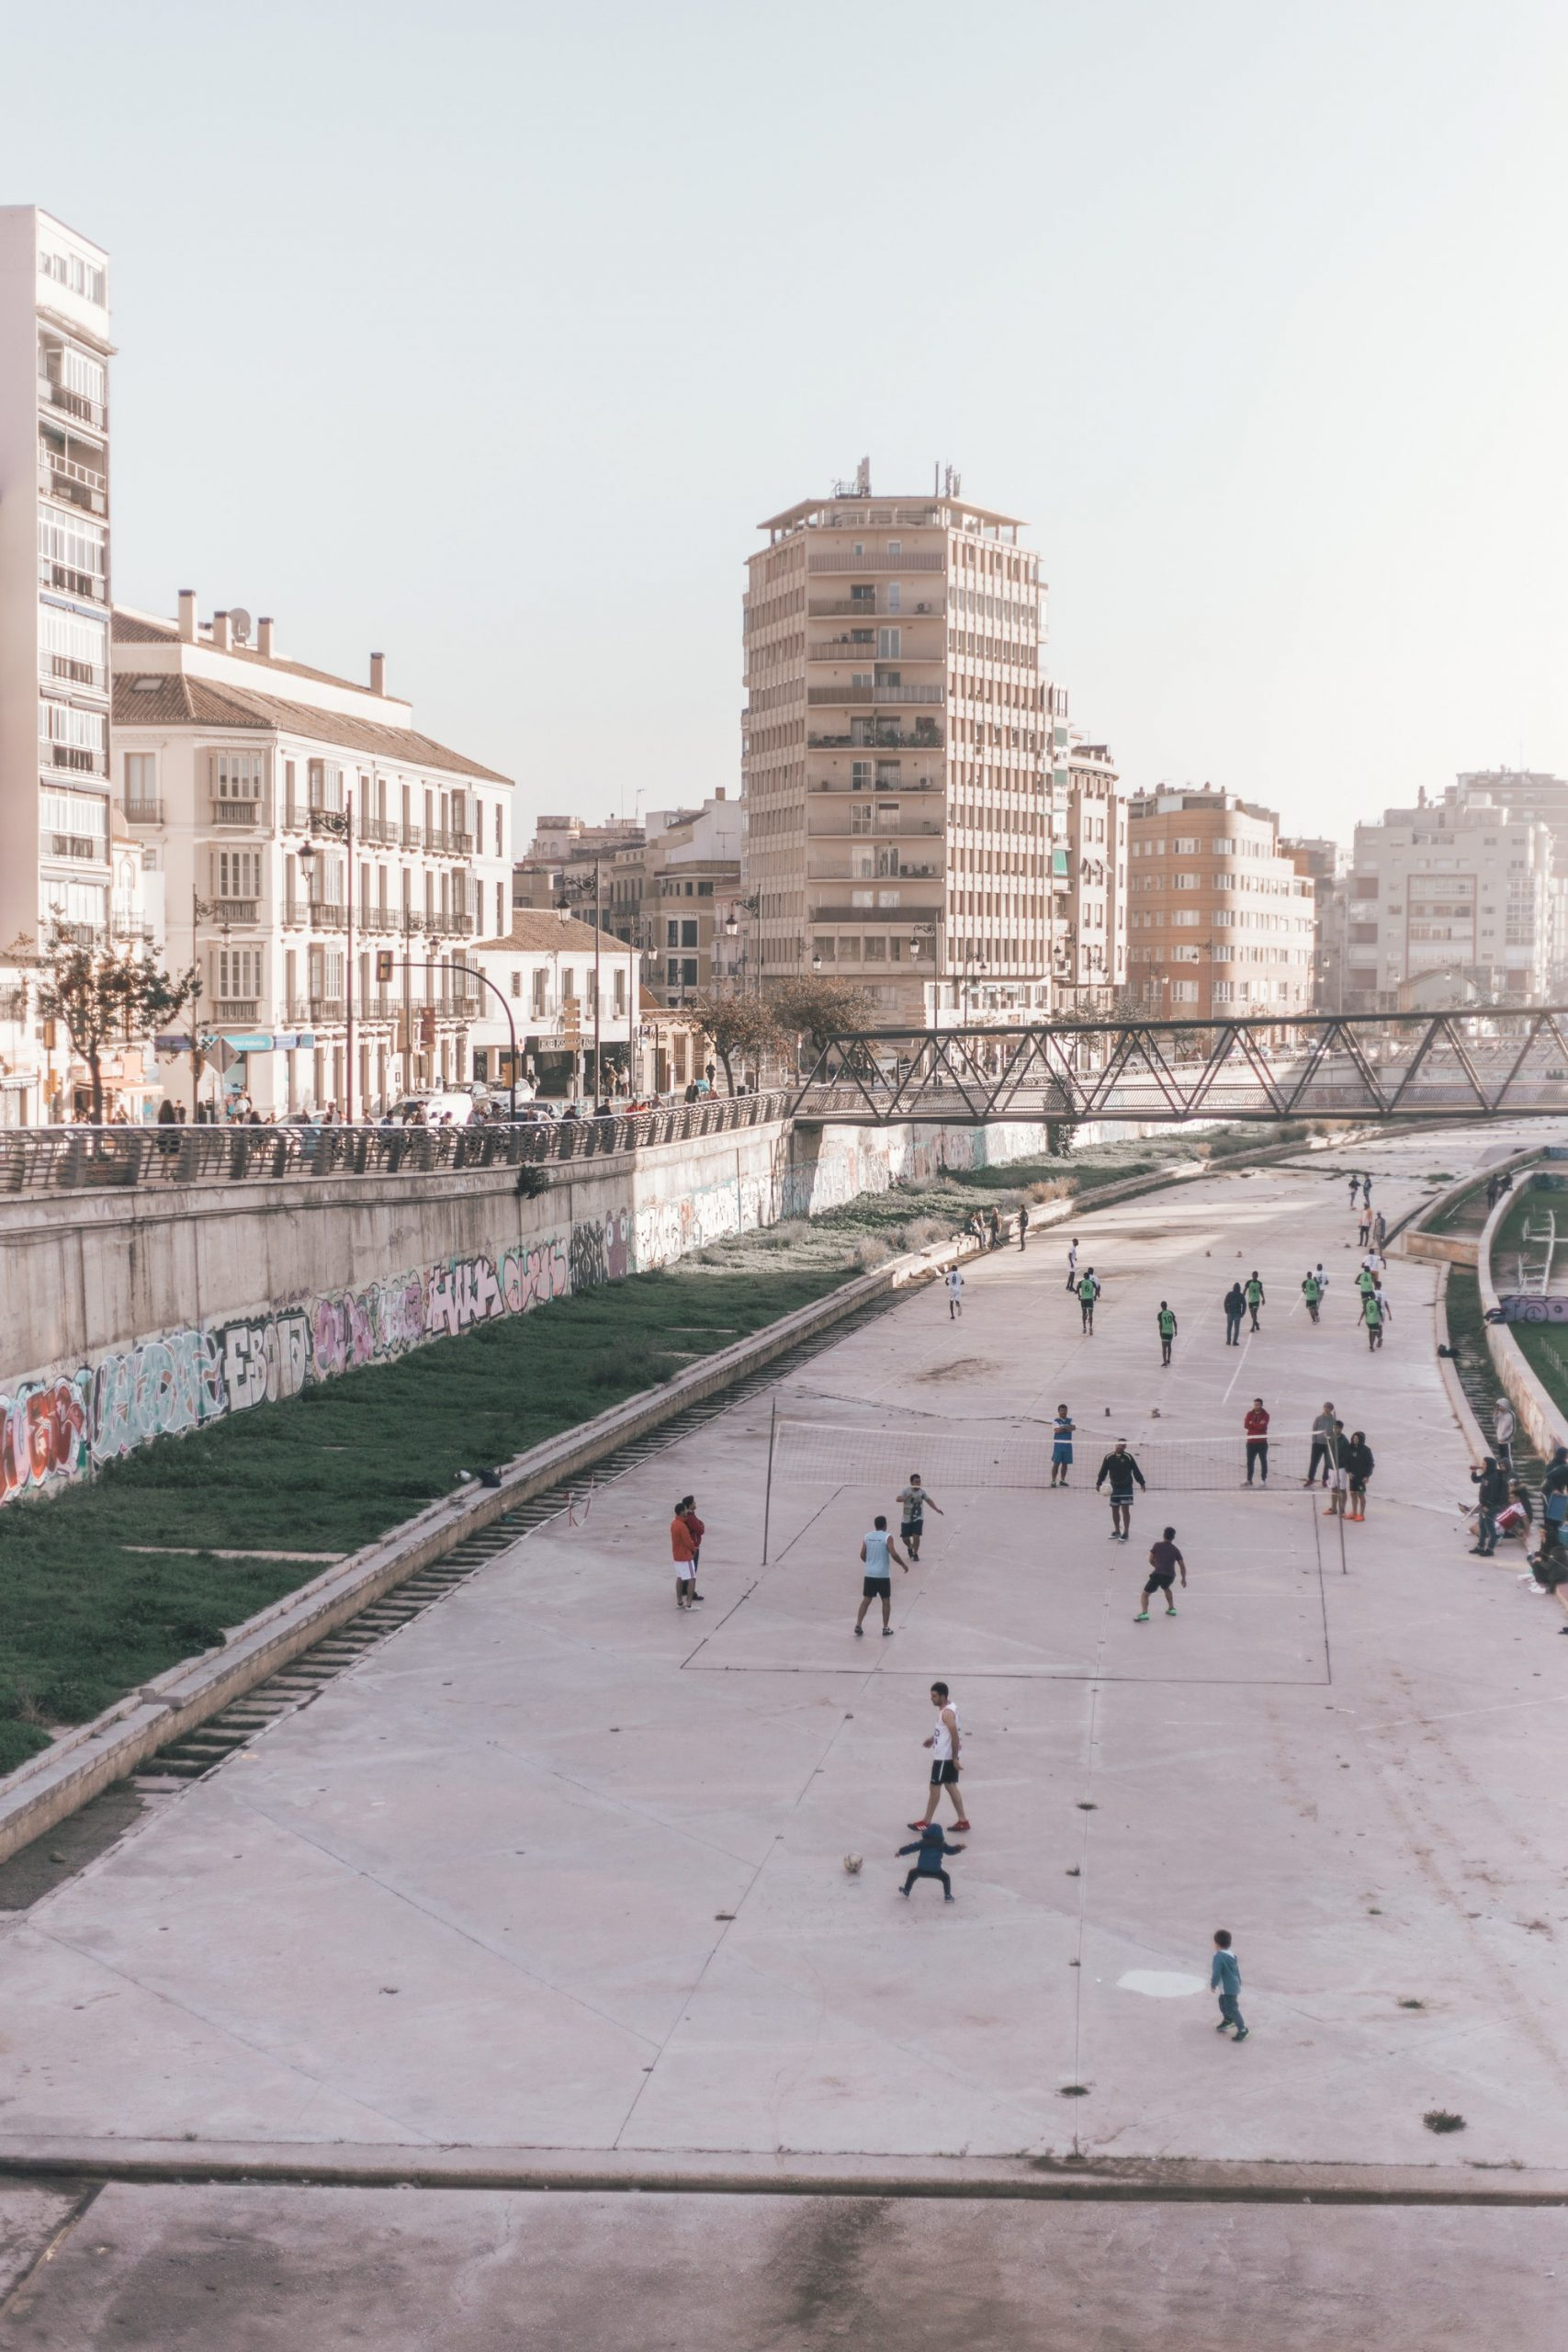 People playing on the street in Malaga | How to spend a weekend in Malaga guide #mondomulia